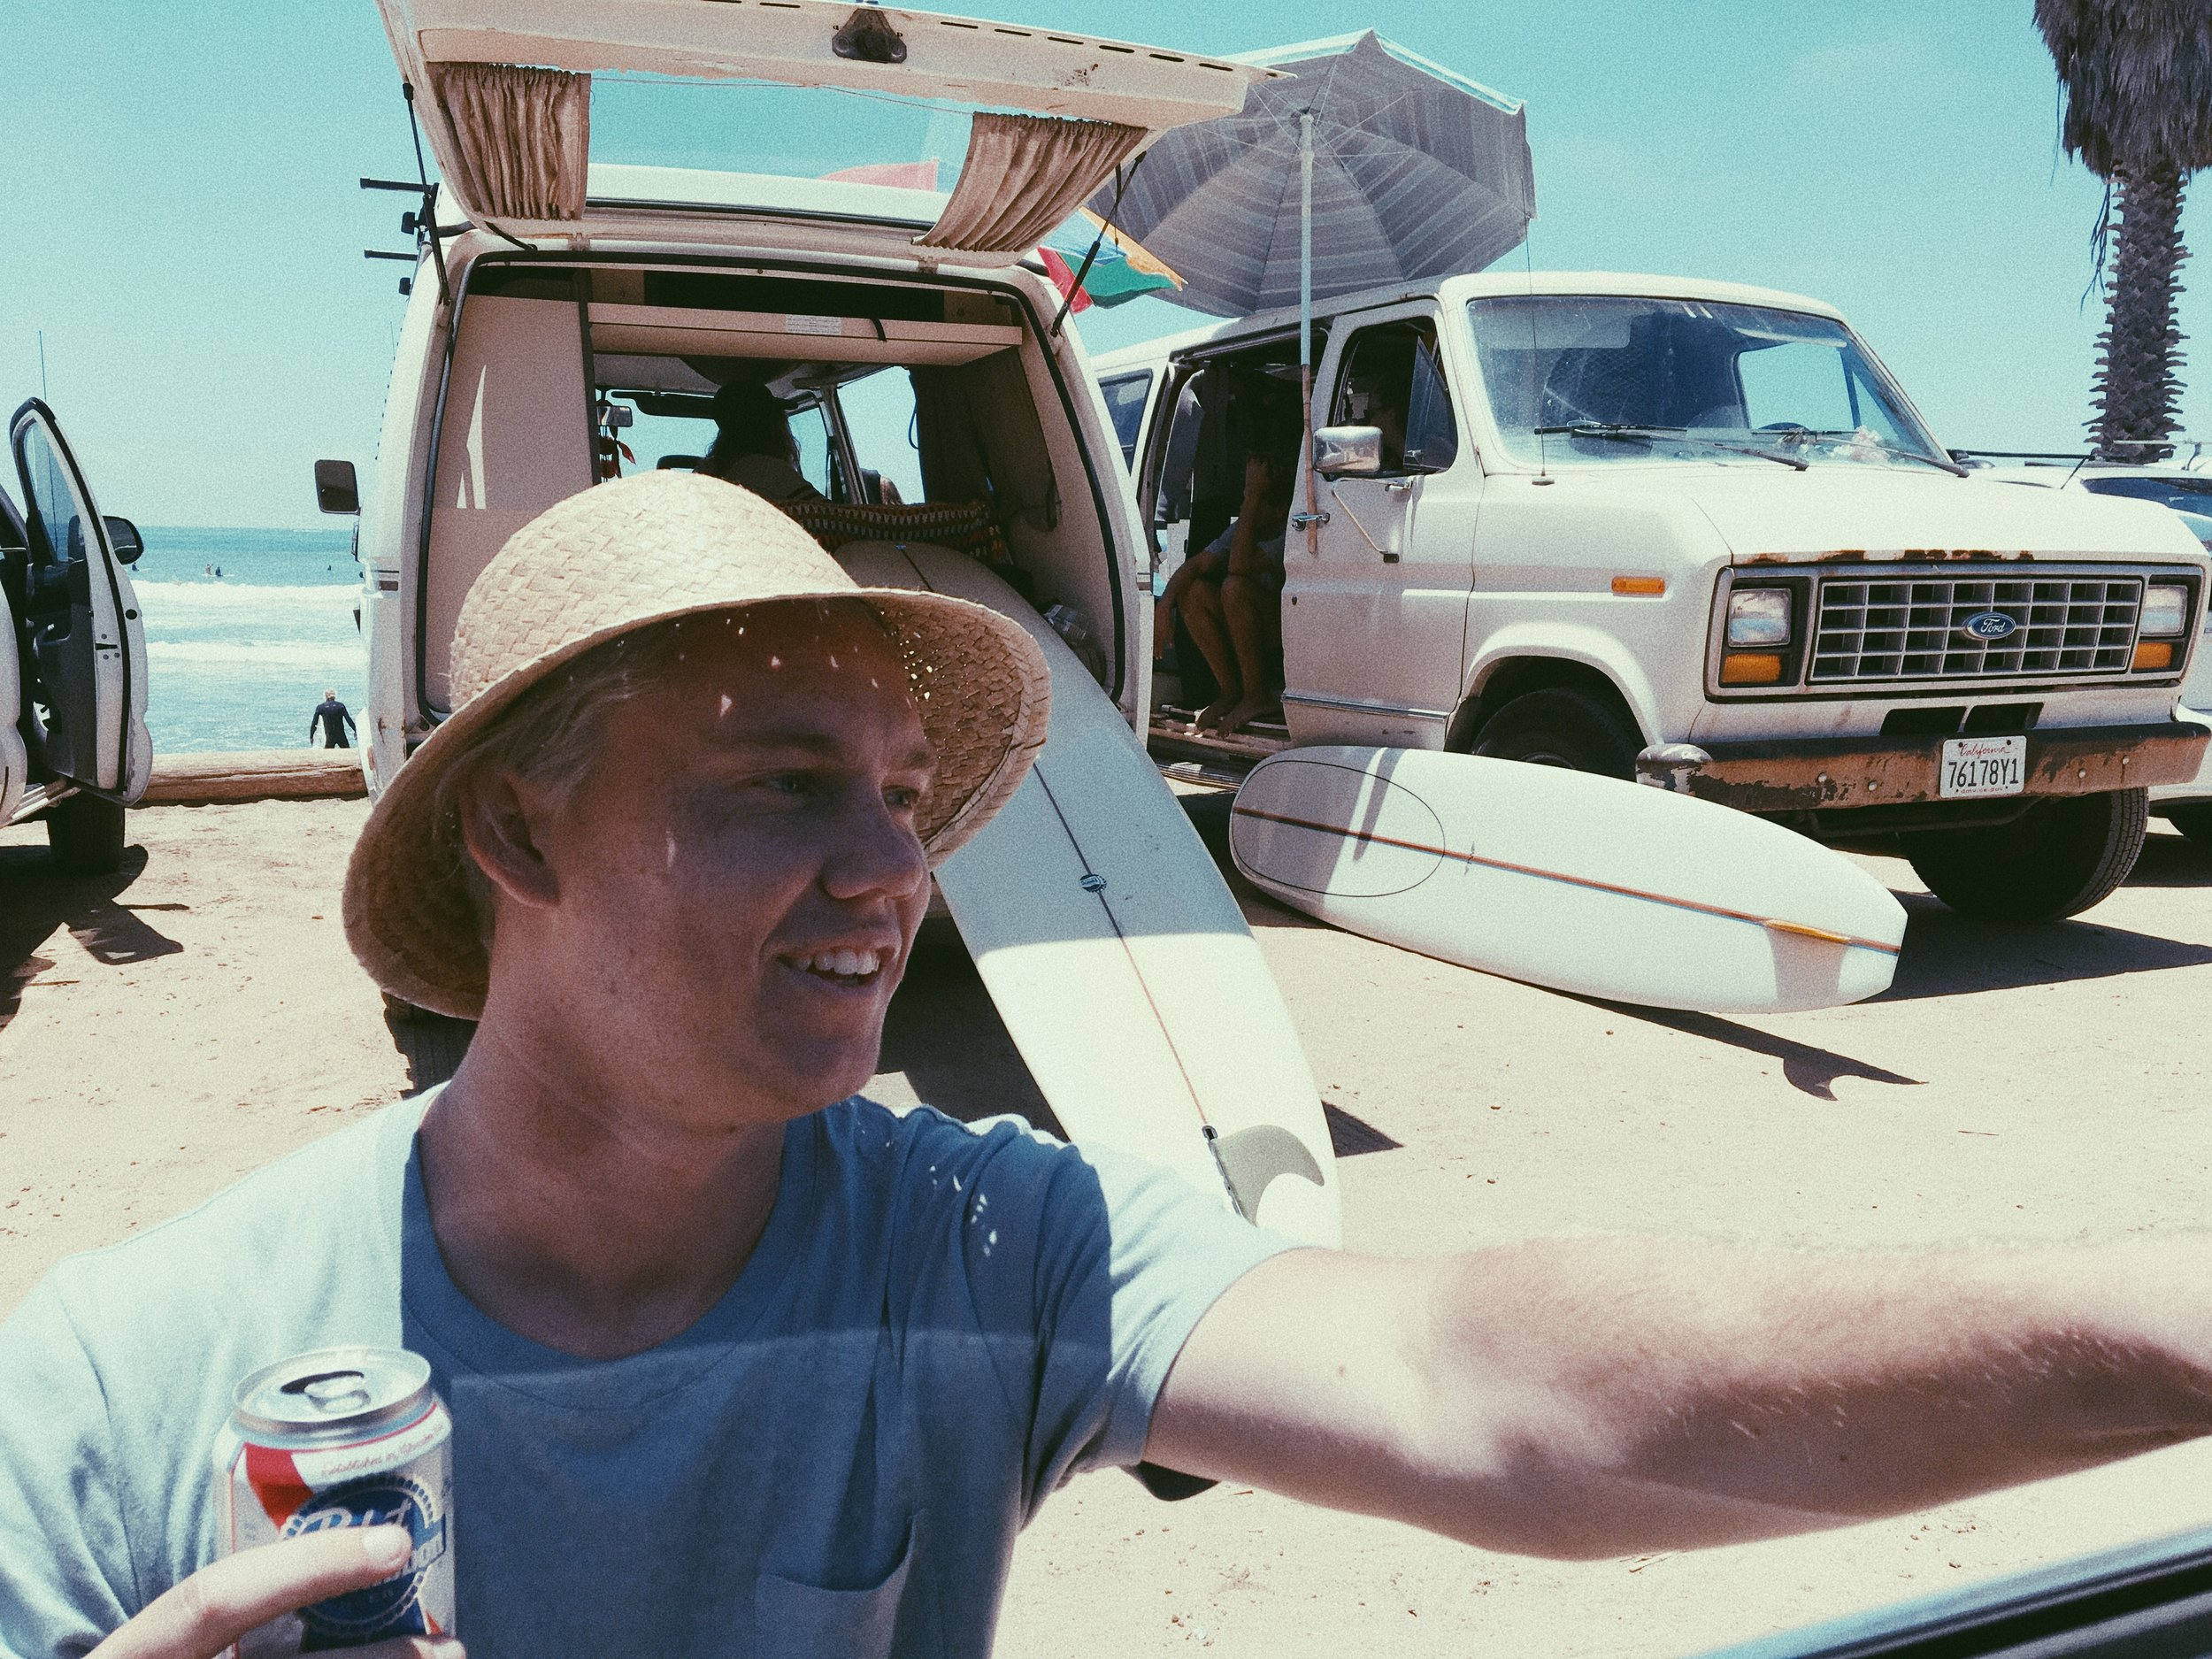 PHOTOGRAPHER AND VIDEOGRAPHER KEVIN JANSEN IN SAN ONOFRE.